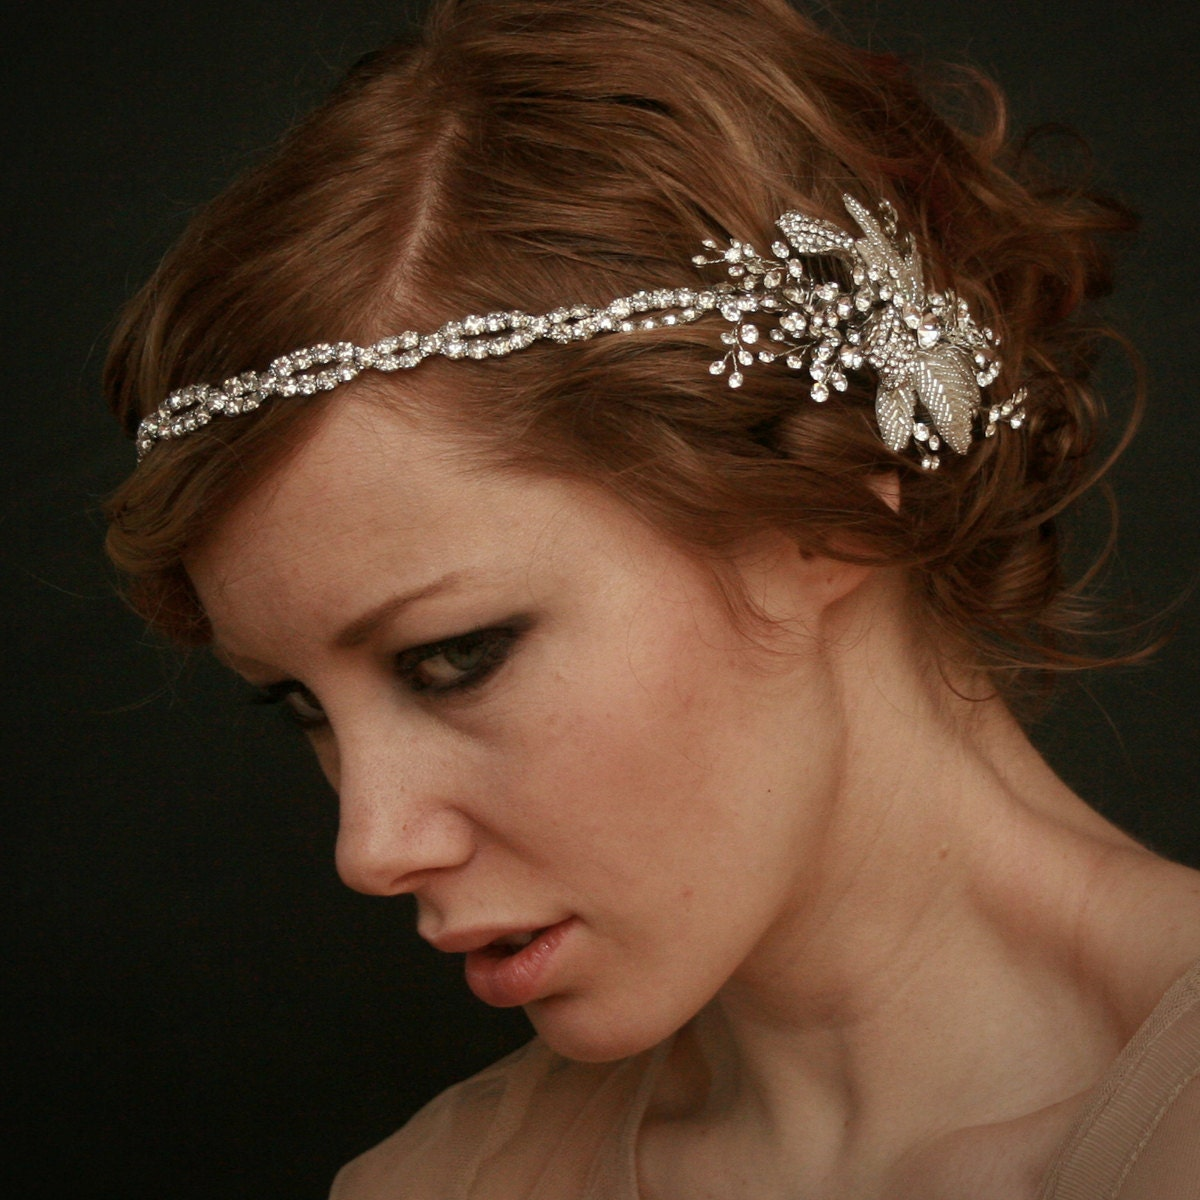 art deco wedding accessory, gatsby wedding